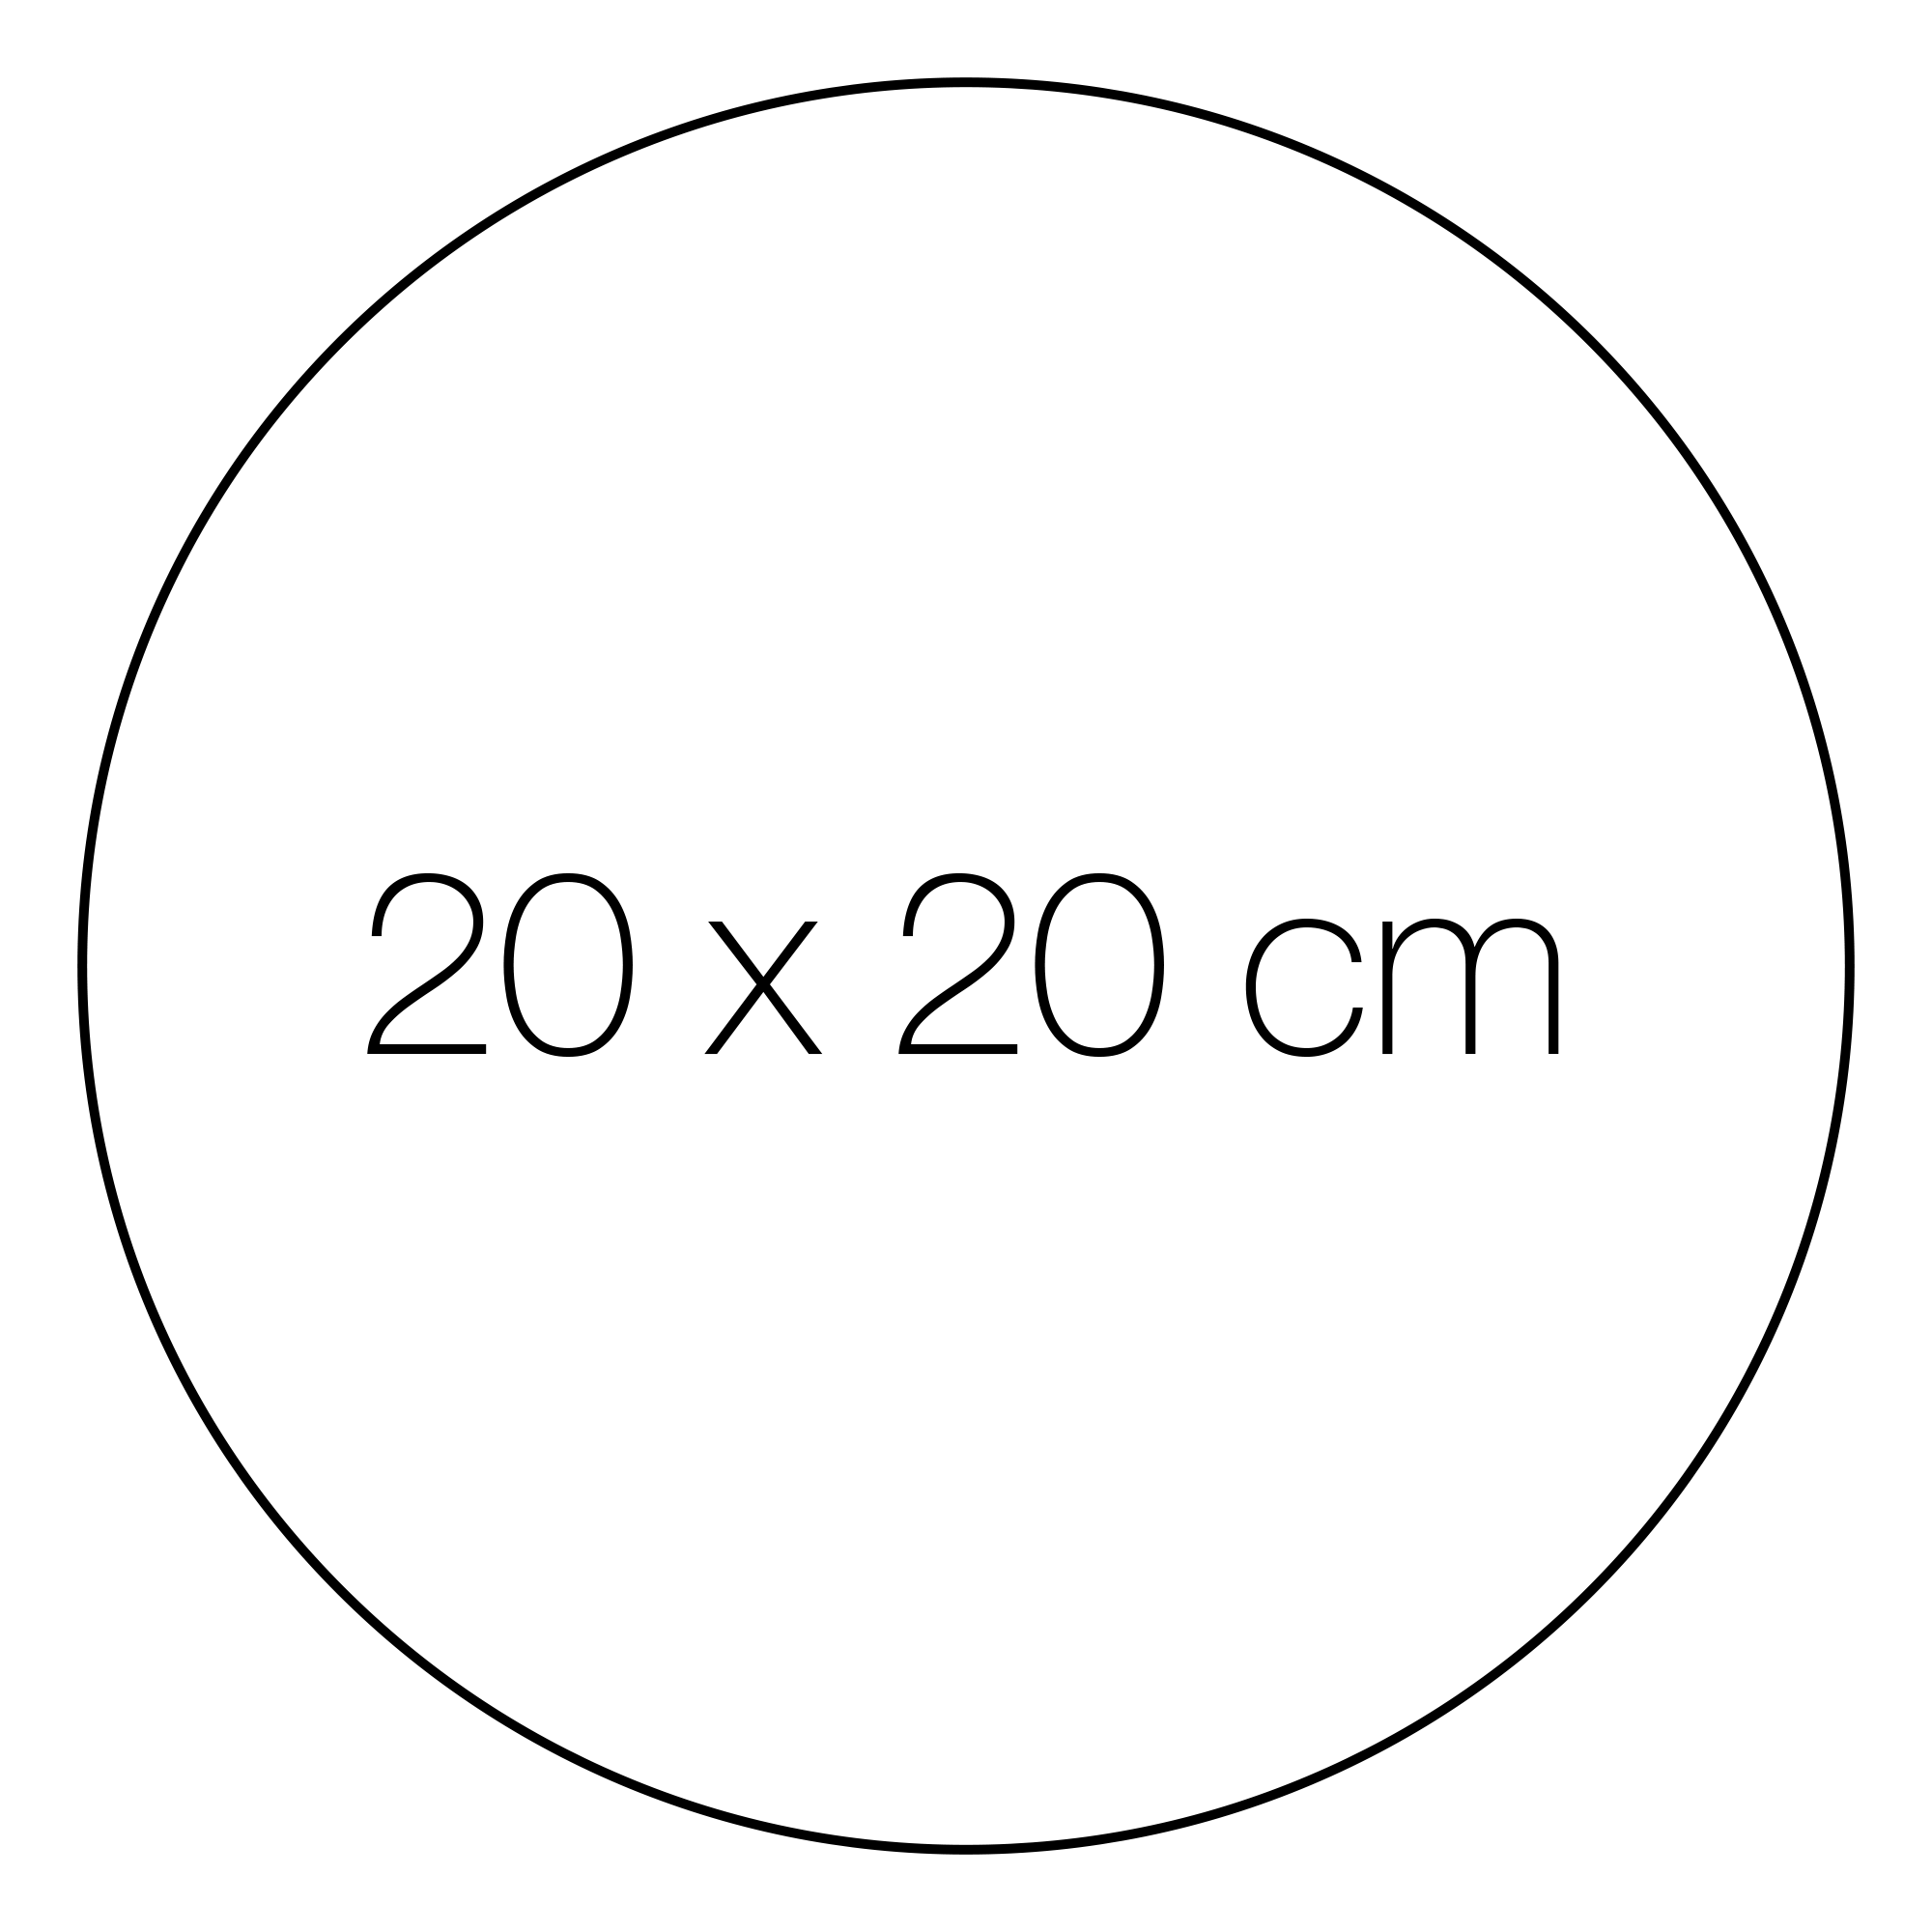 attribute-size-20-x-20-centimeters